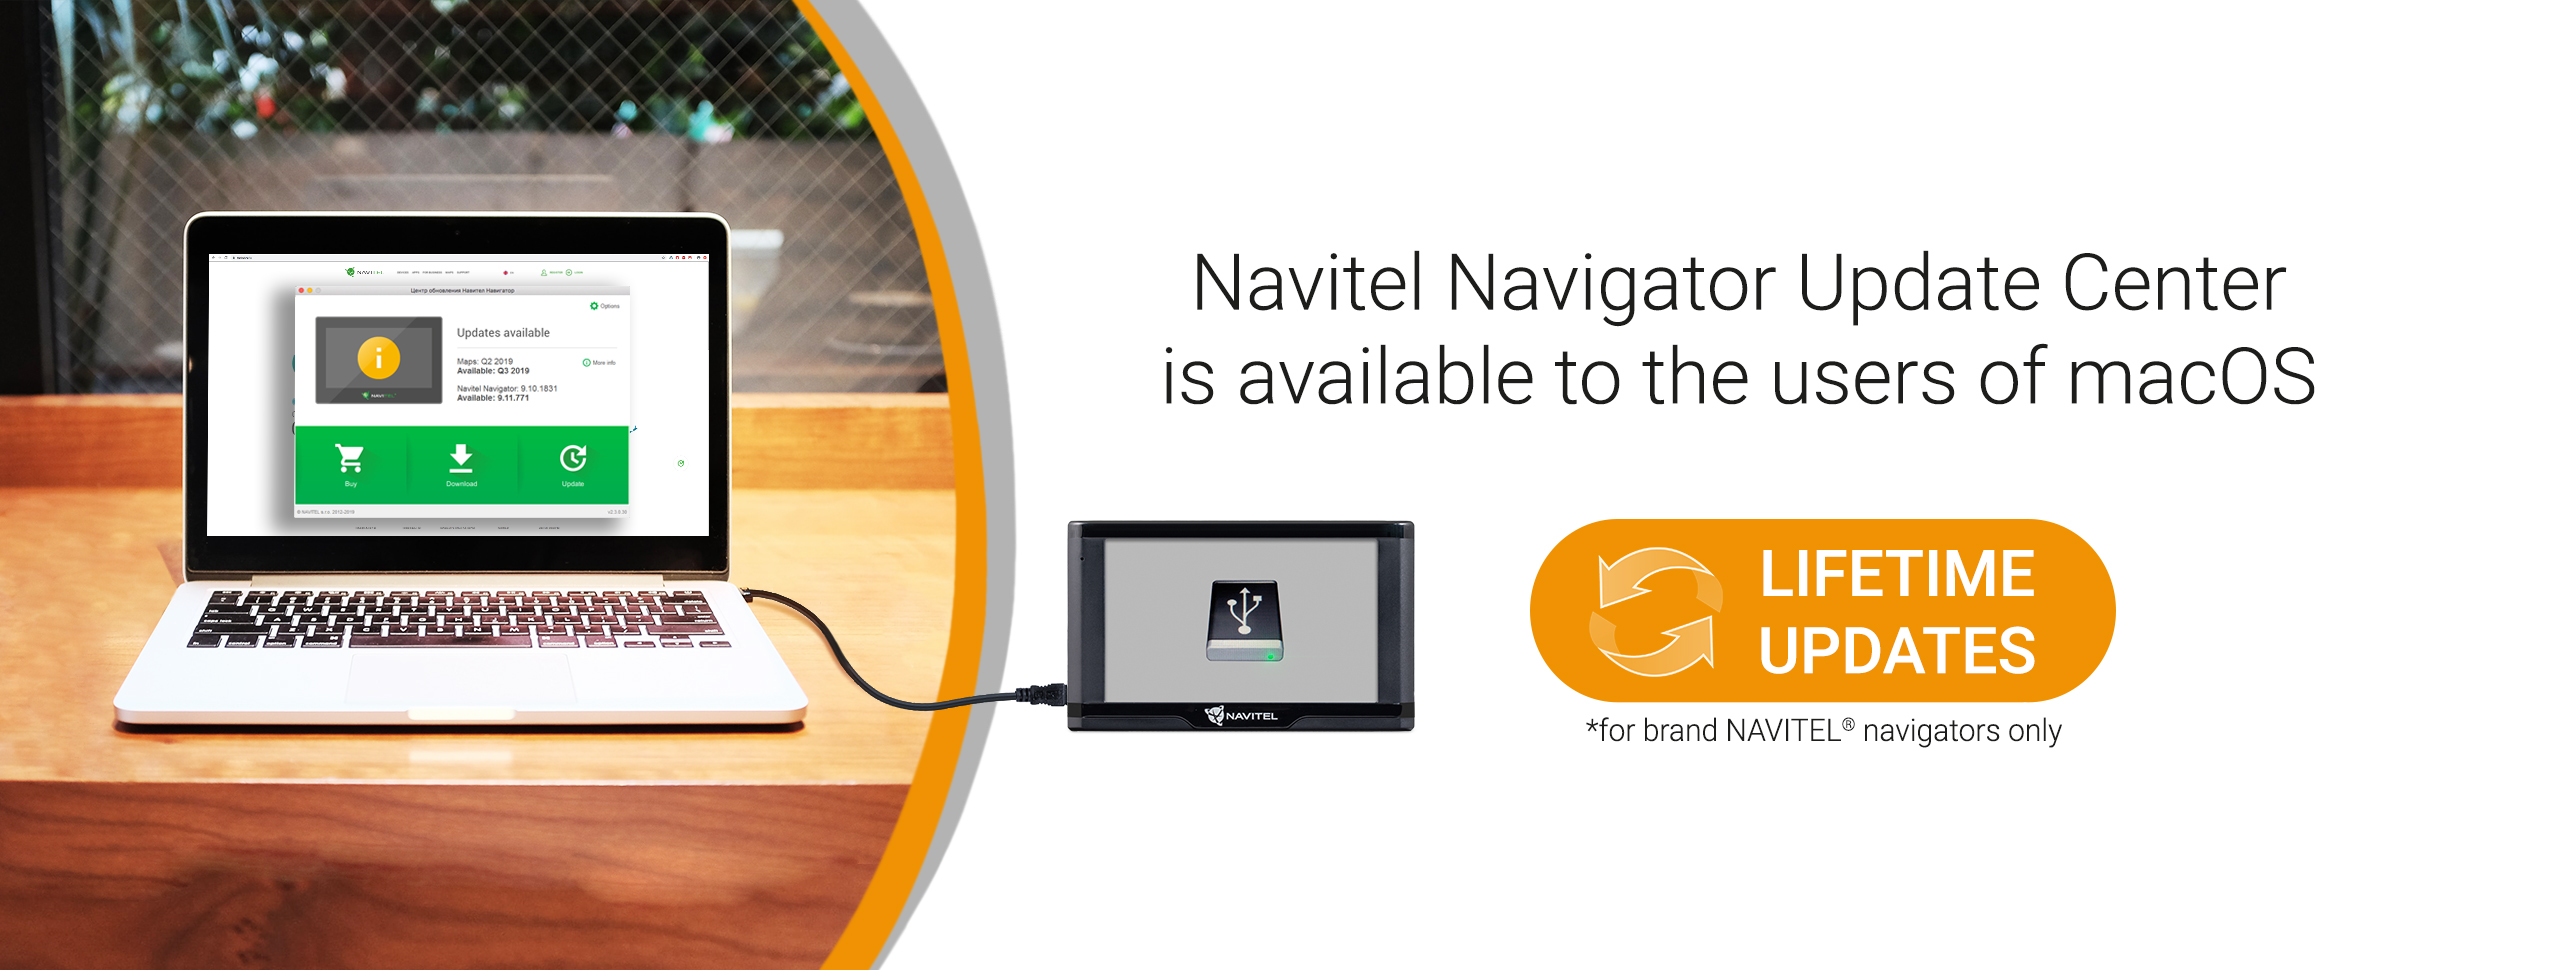 Navitel Navigator Update Center to the users of macOS